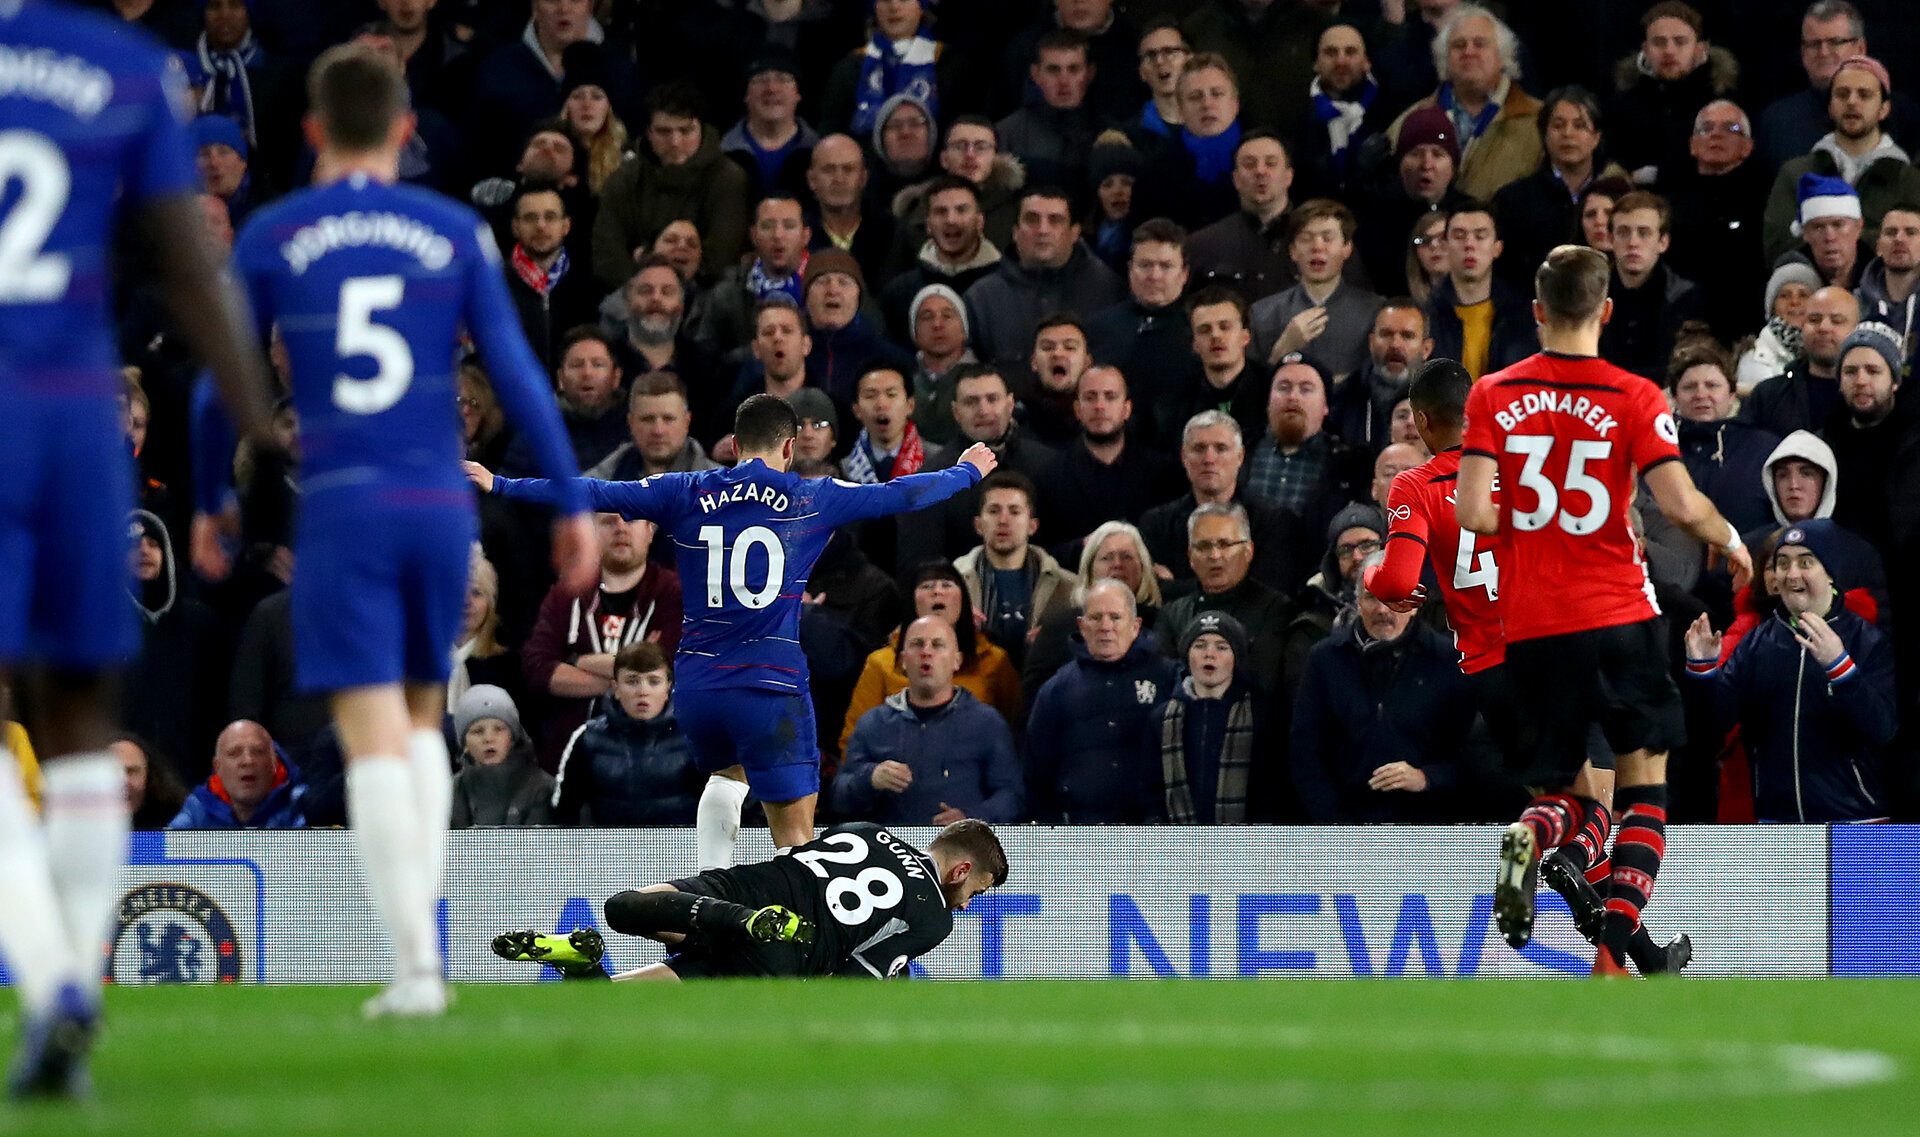 LONDON, ENGLAND - JANUARY 02: Angus Gunn of Southampton saves from Eden Hazard of Chelsea during the Premier League match between Chelsea FC and Southampton FC at Stamford Bridge on January 02, 2019 in London, United Kingdom. (Photo by Matt Watson/Southampton FC via Getty Images)